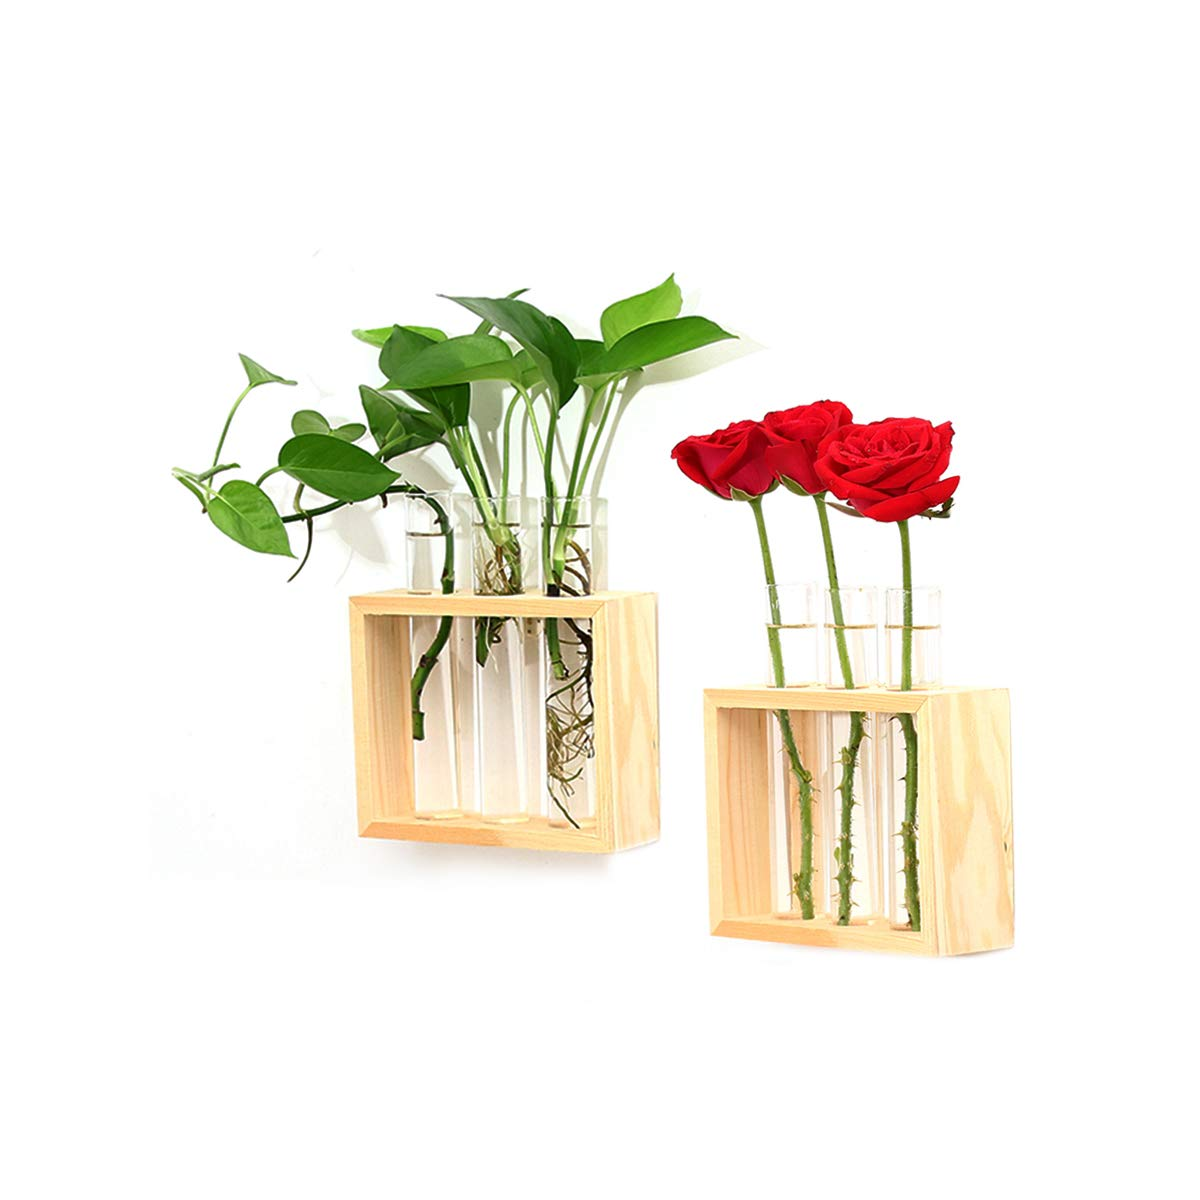 Ivolador Wall Hanging Plant Test Tube Flower Bud Vase in Wooden Stand Perfect for Hydroponic Plants Home Garden Wedding Decoration